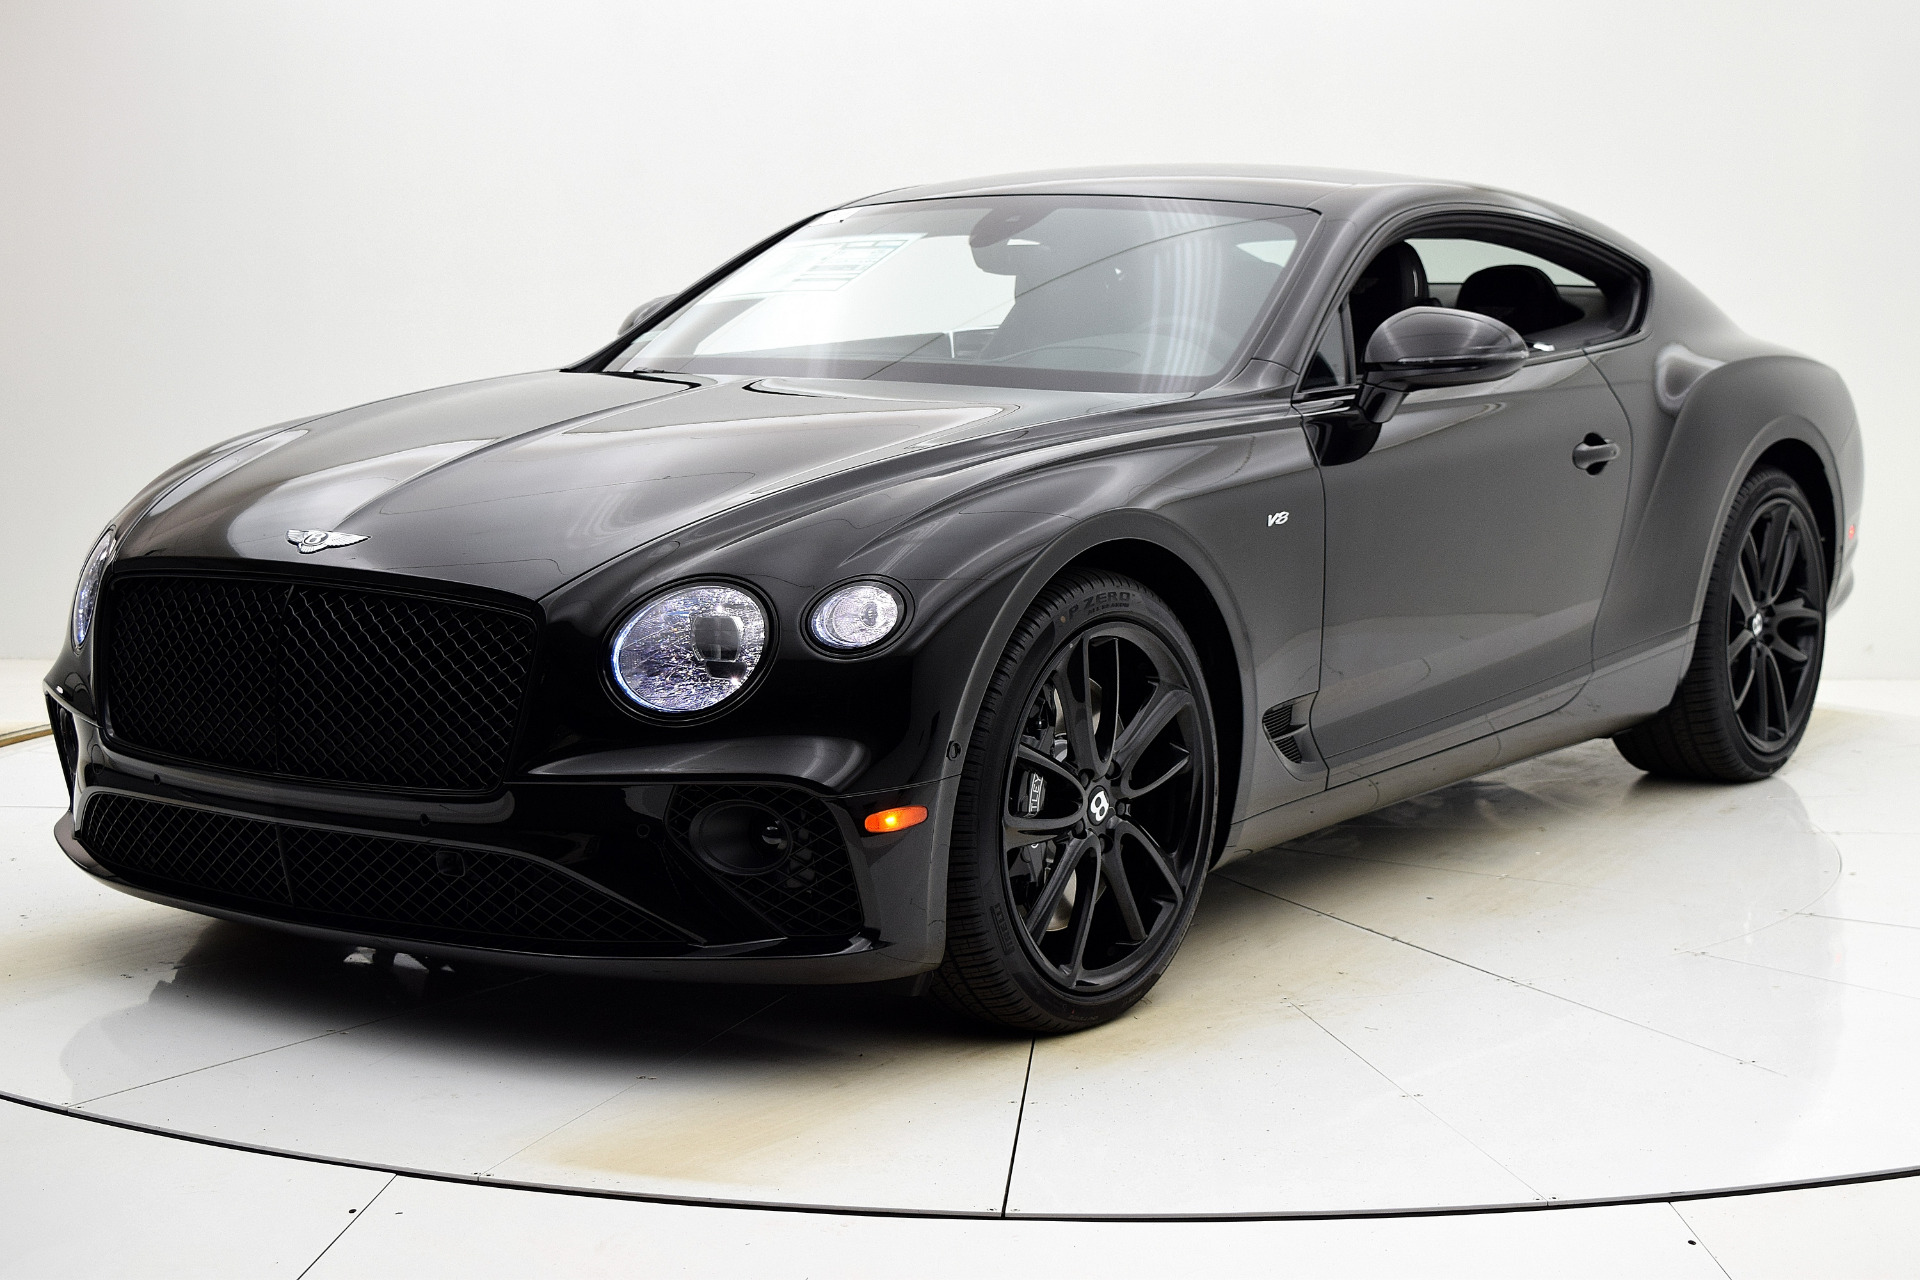 New 2021 Bentley Continental GT V8 Coupe for sale $250,485 at Bentley Palmyra N.J. in Palmyra NJ 08065 2